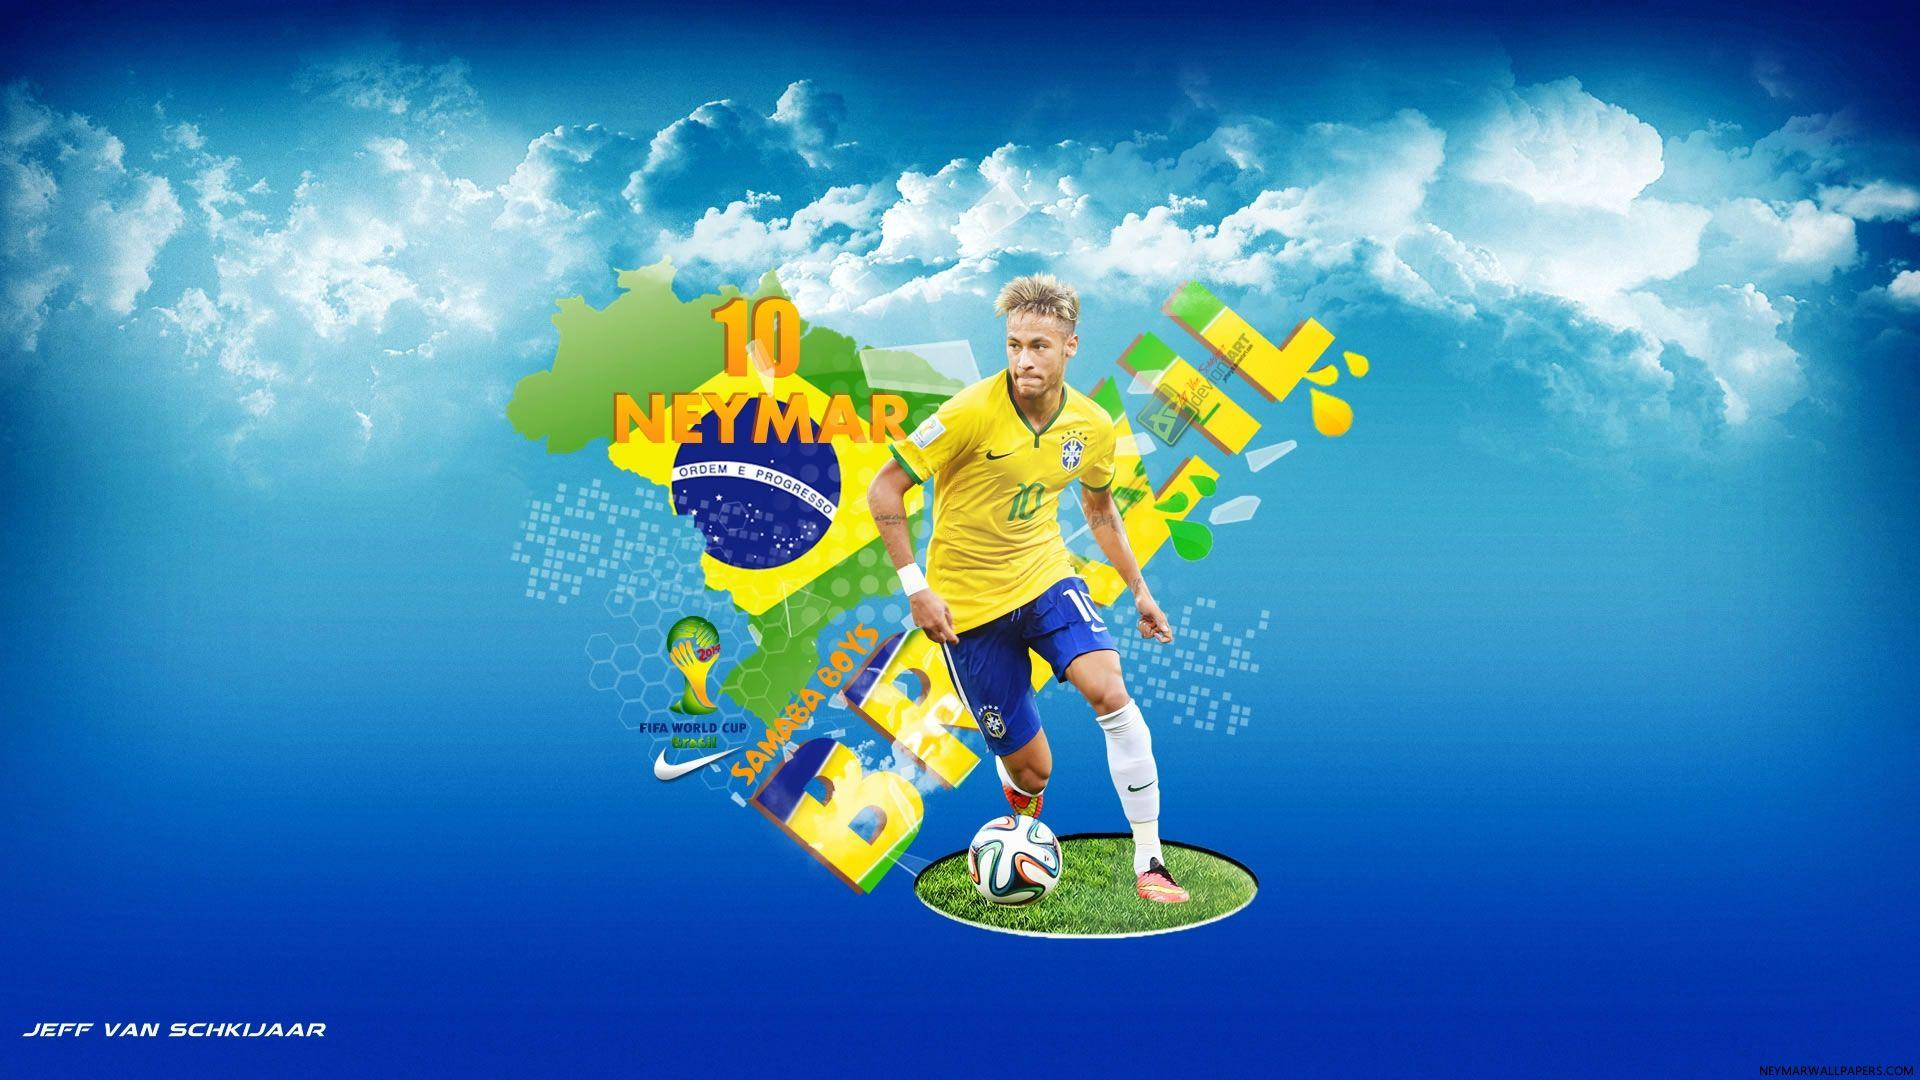 Neymar Sports Brazil Wallpapers, Brazil Wallpapers | HD Wallpapers Top